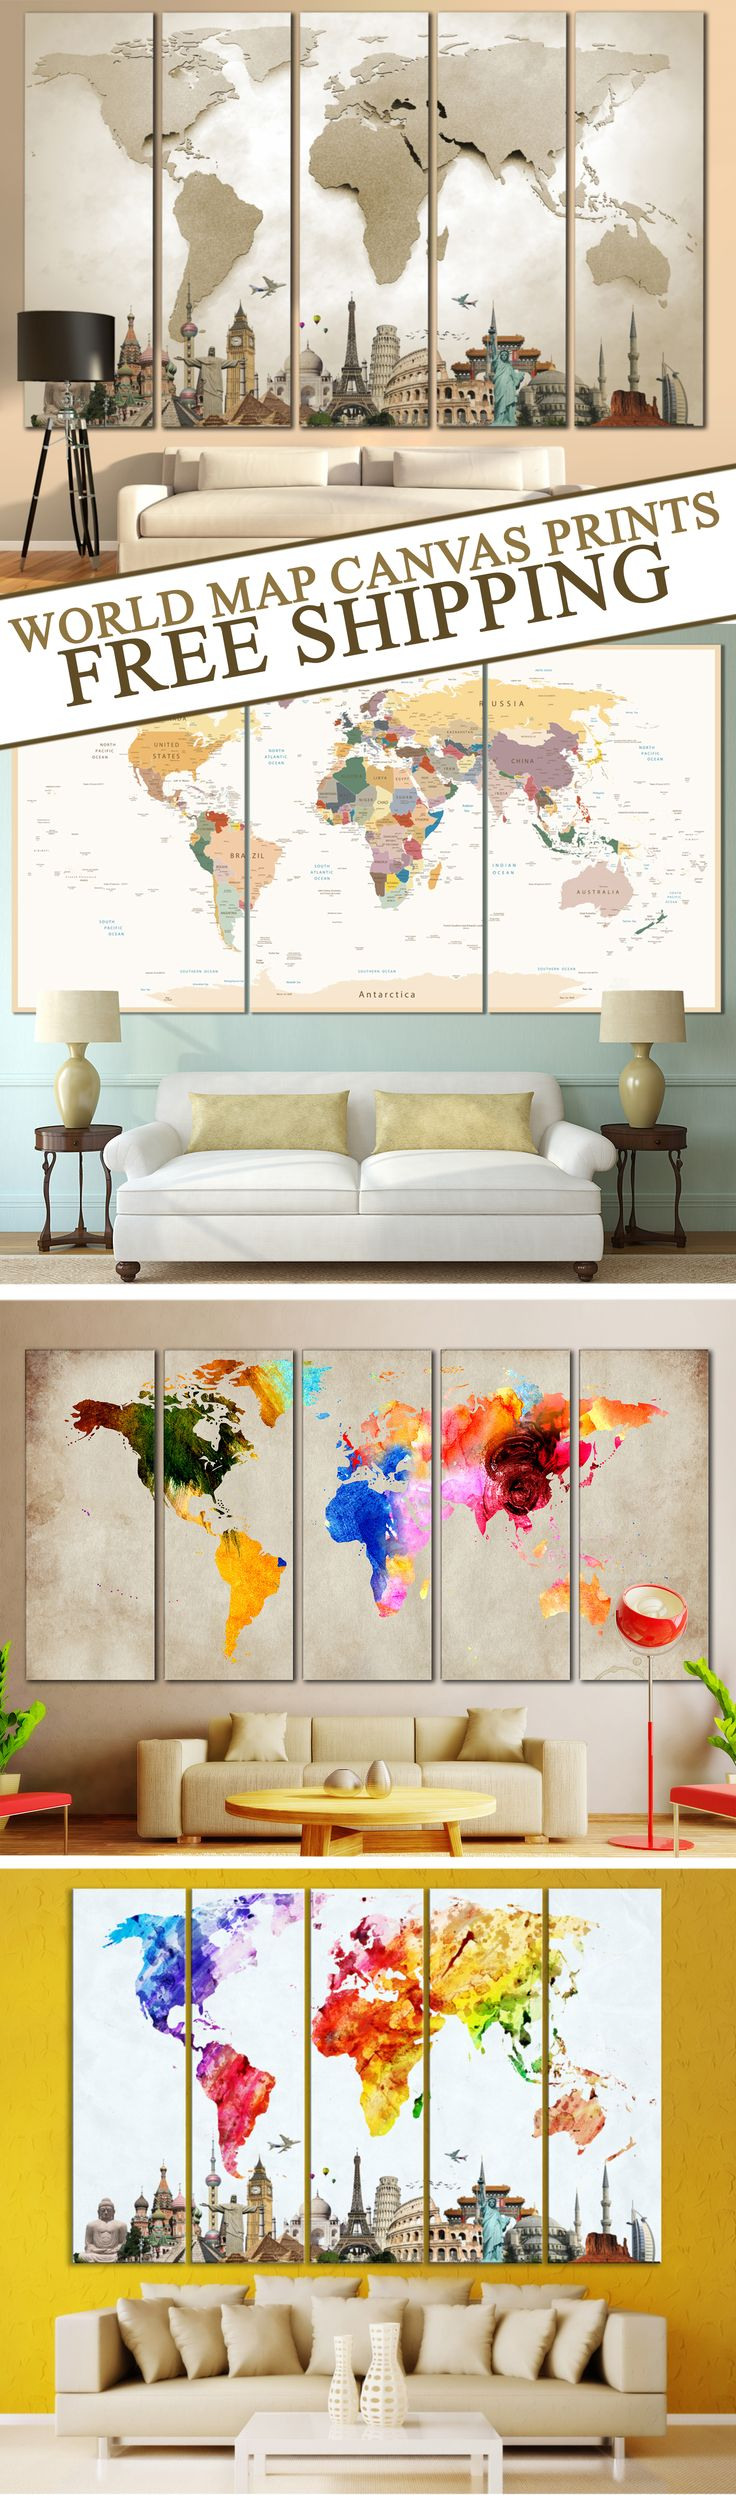 Are you looking for something aesthetic appealing to your eyes? Inspired by the beautiful colors and watercolor art, we have presented our exclusive World Map Canvas Arts for Home & Office wall Decoration. Use code:FREE2SHIP for free shipping worldwide.